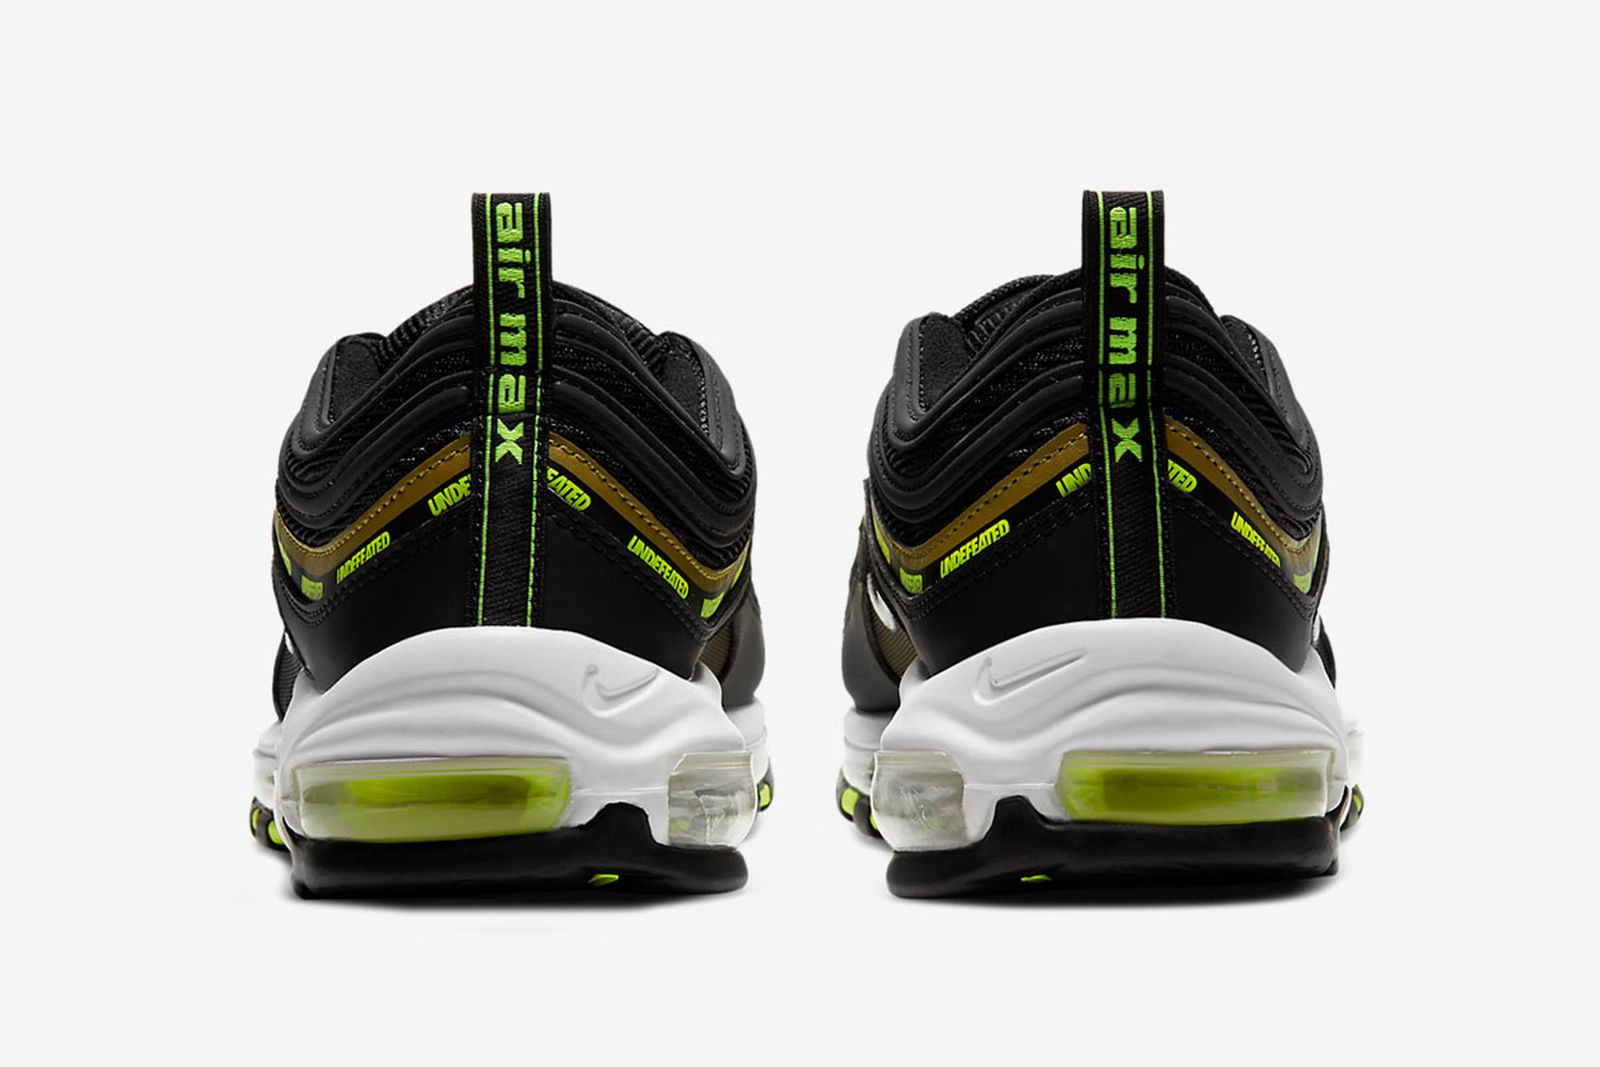 undefeated-nike-air-max-97-release-date-price-010